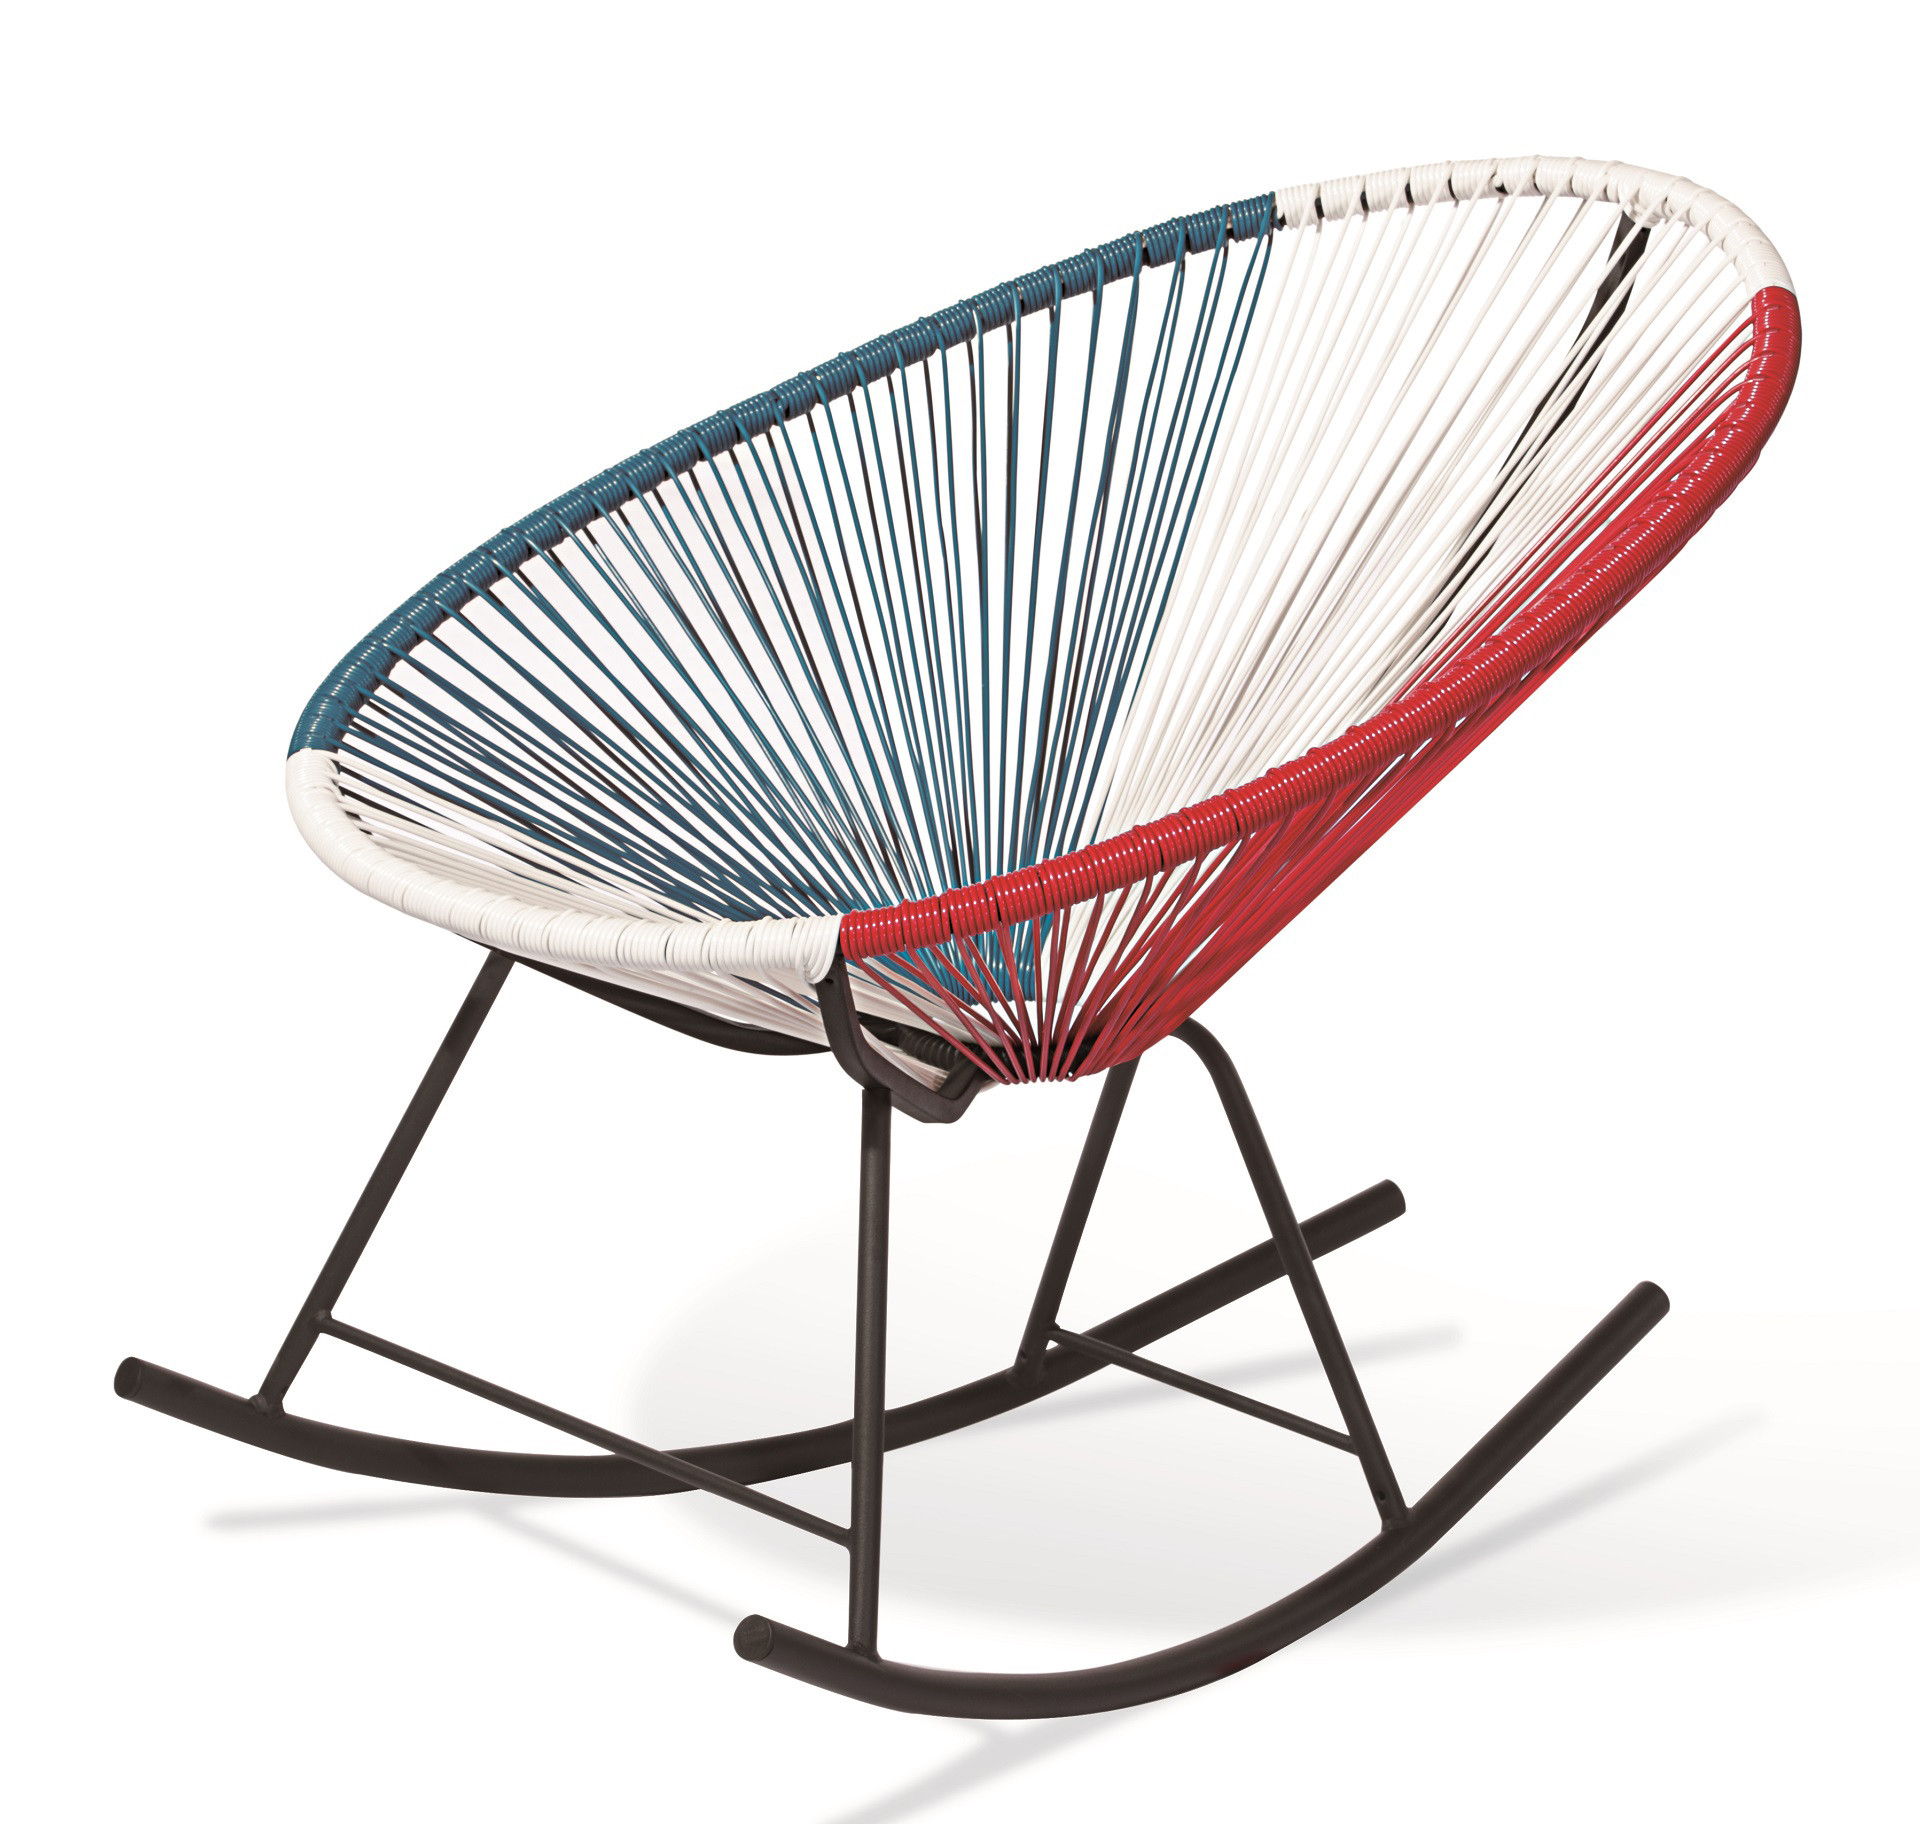 Andre Pierre Patio Rocking Chair Furniture & Home Décor